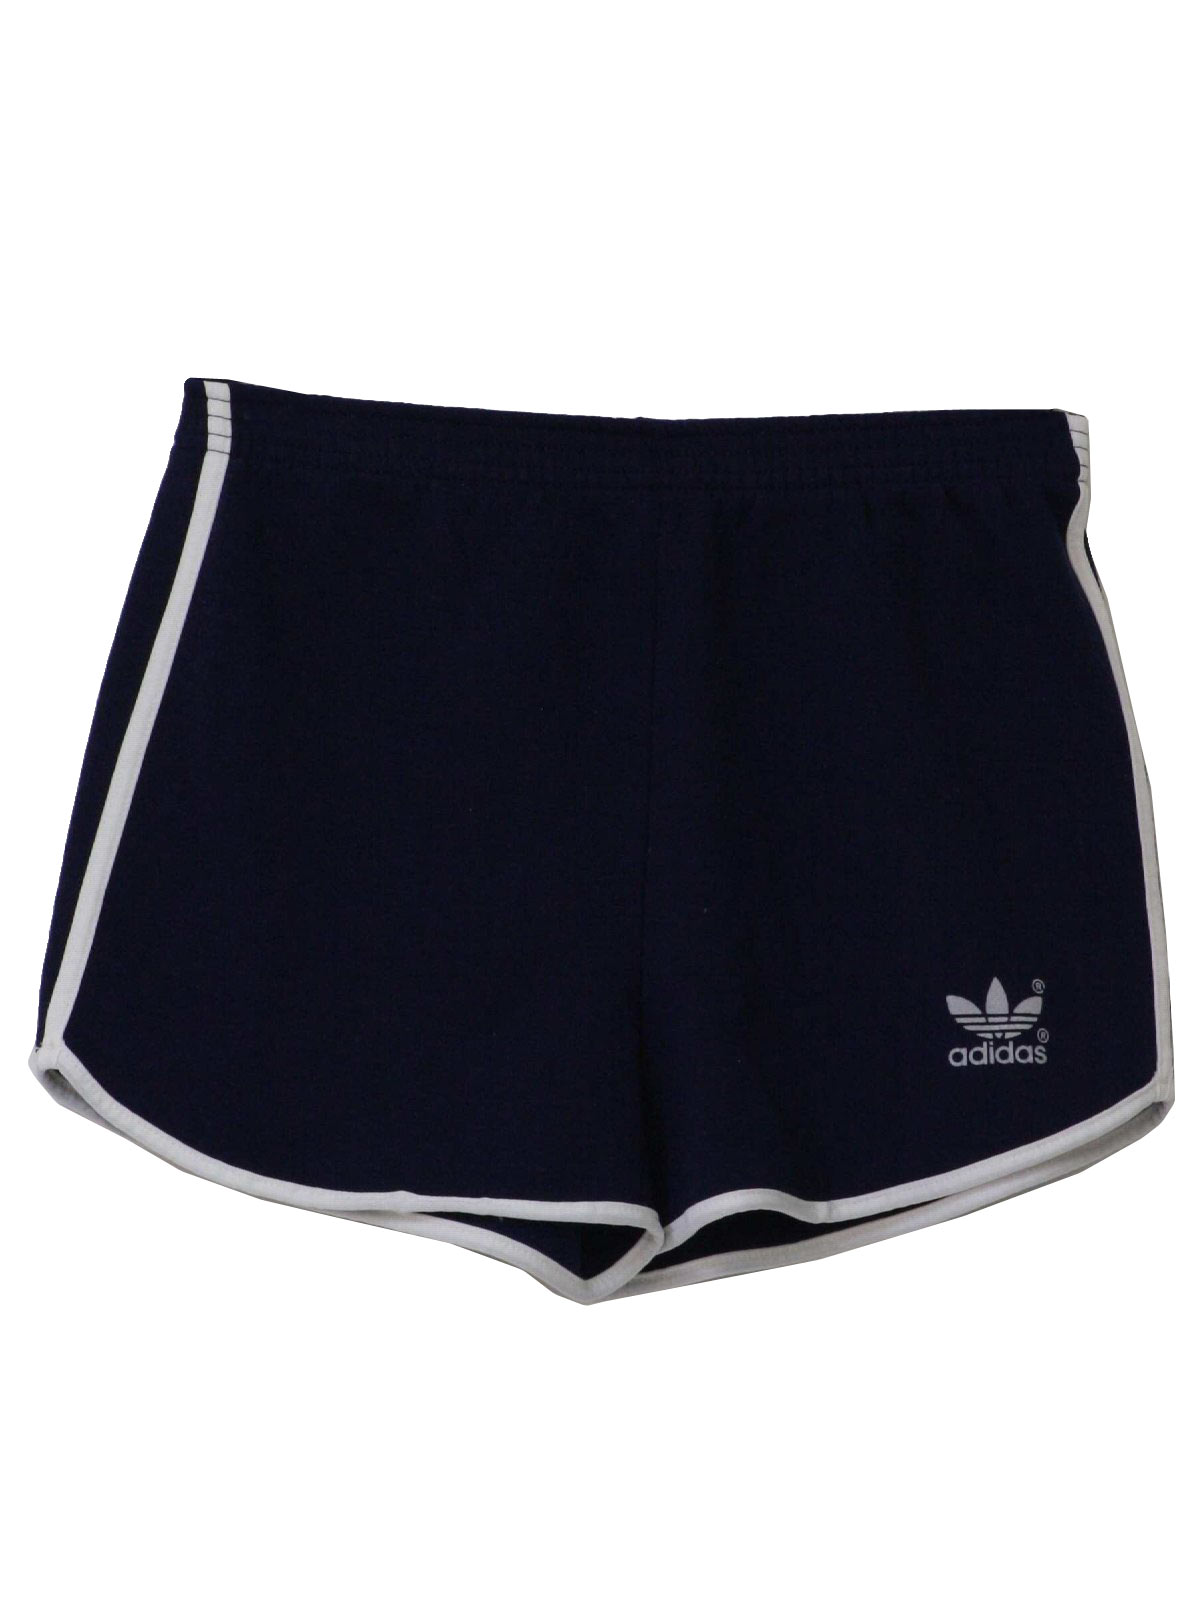 80s Retro Shorts: 80s -Adidas- Mens blue polyester and cotton high ...